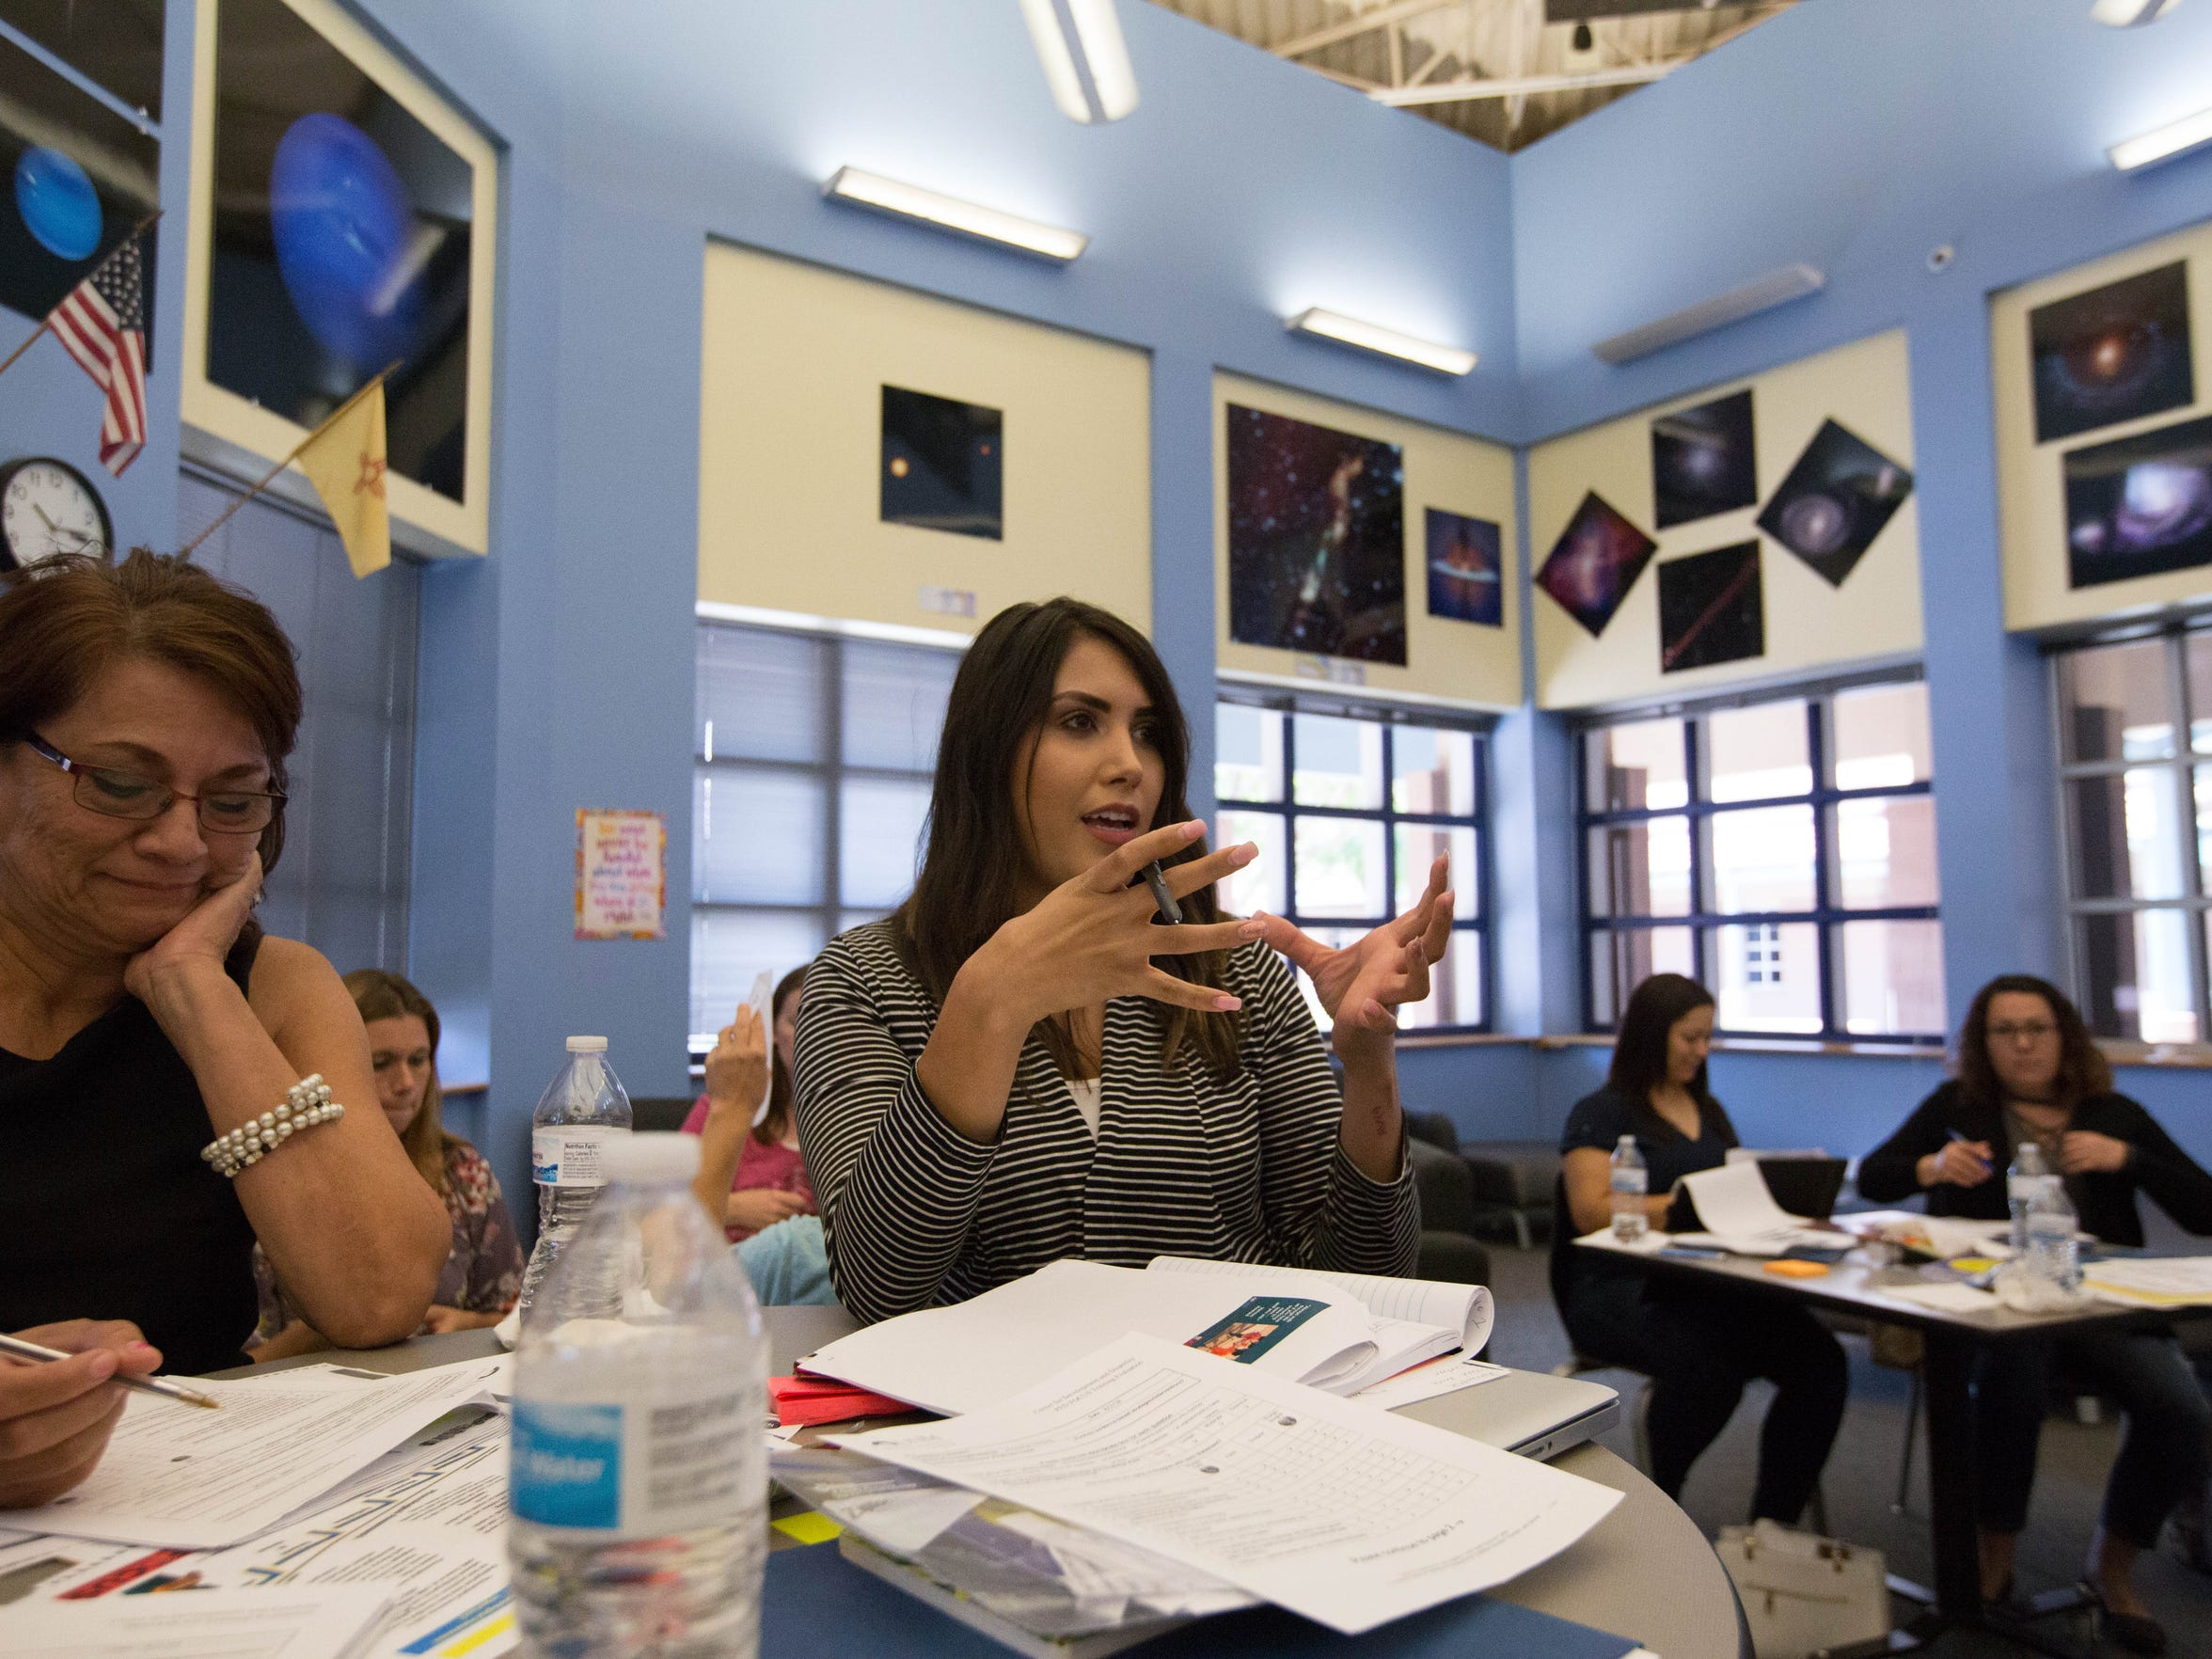 Amy Lerma, center,  a Head Start teacher, asks questions